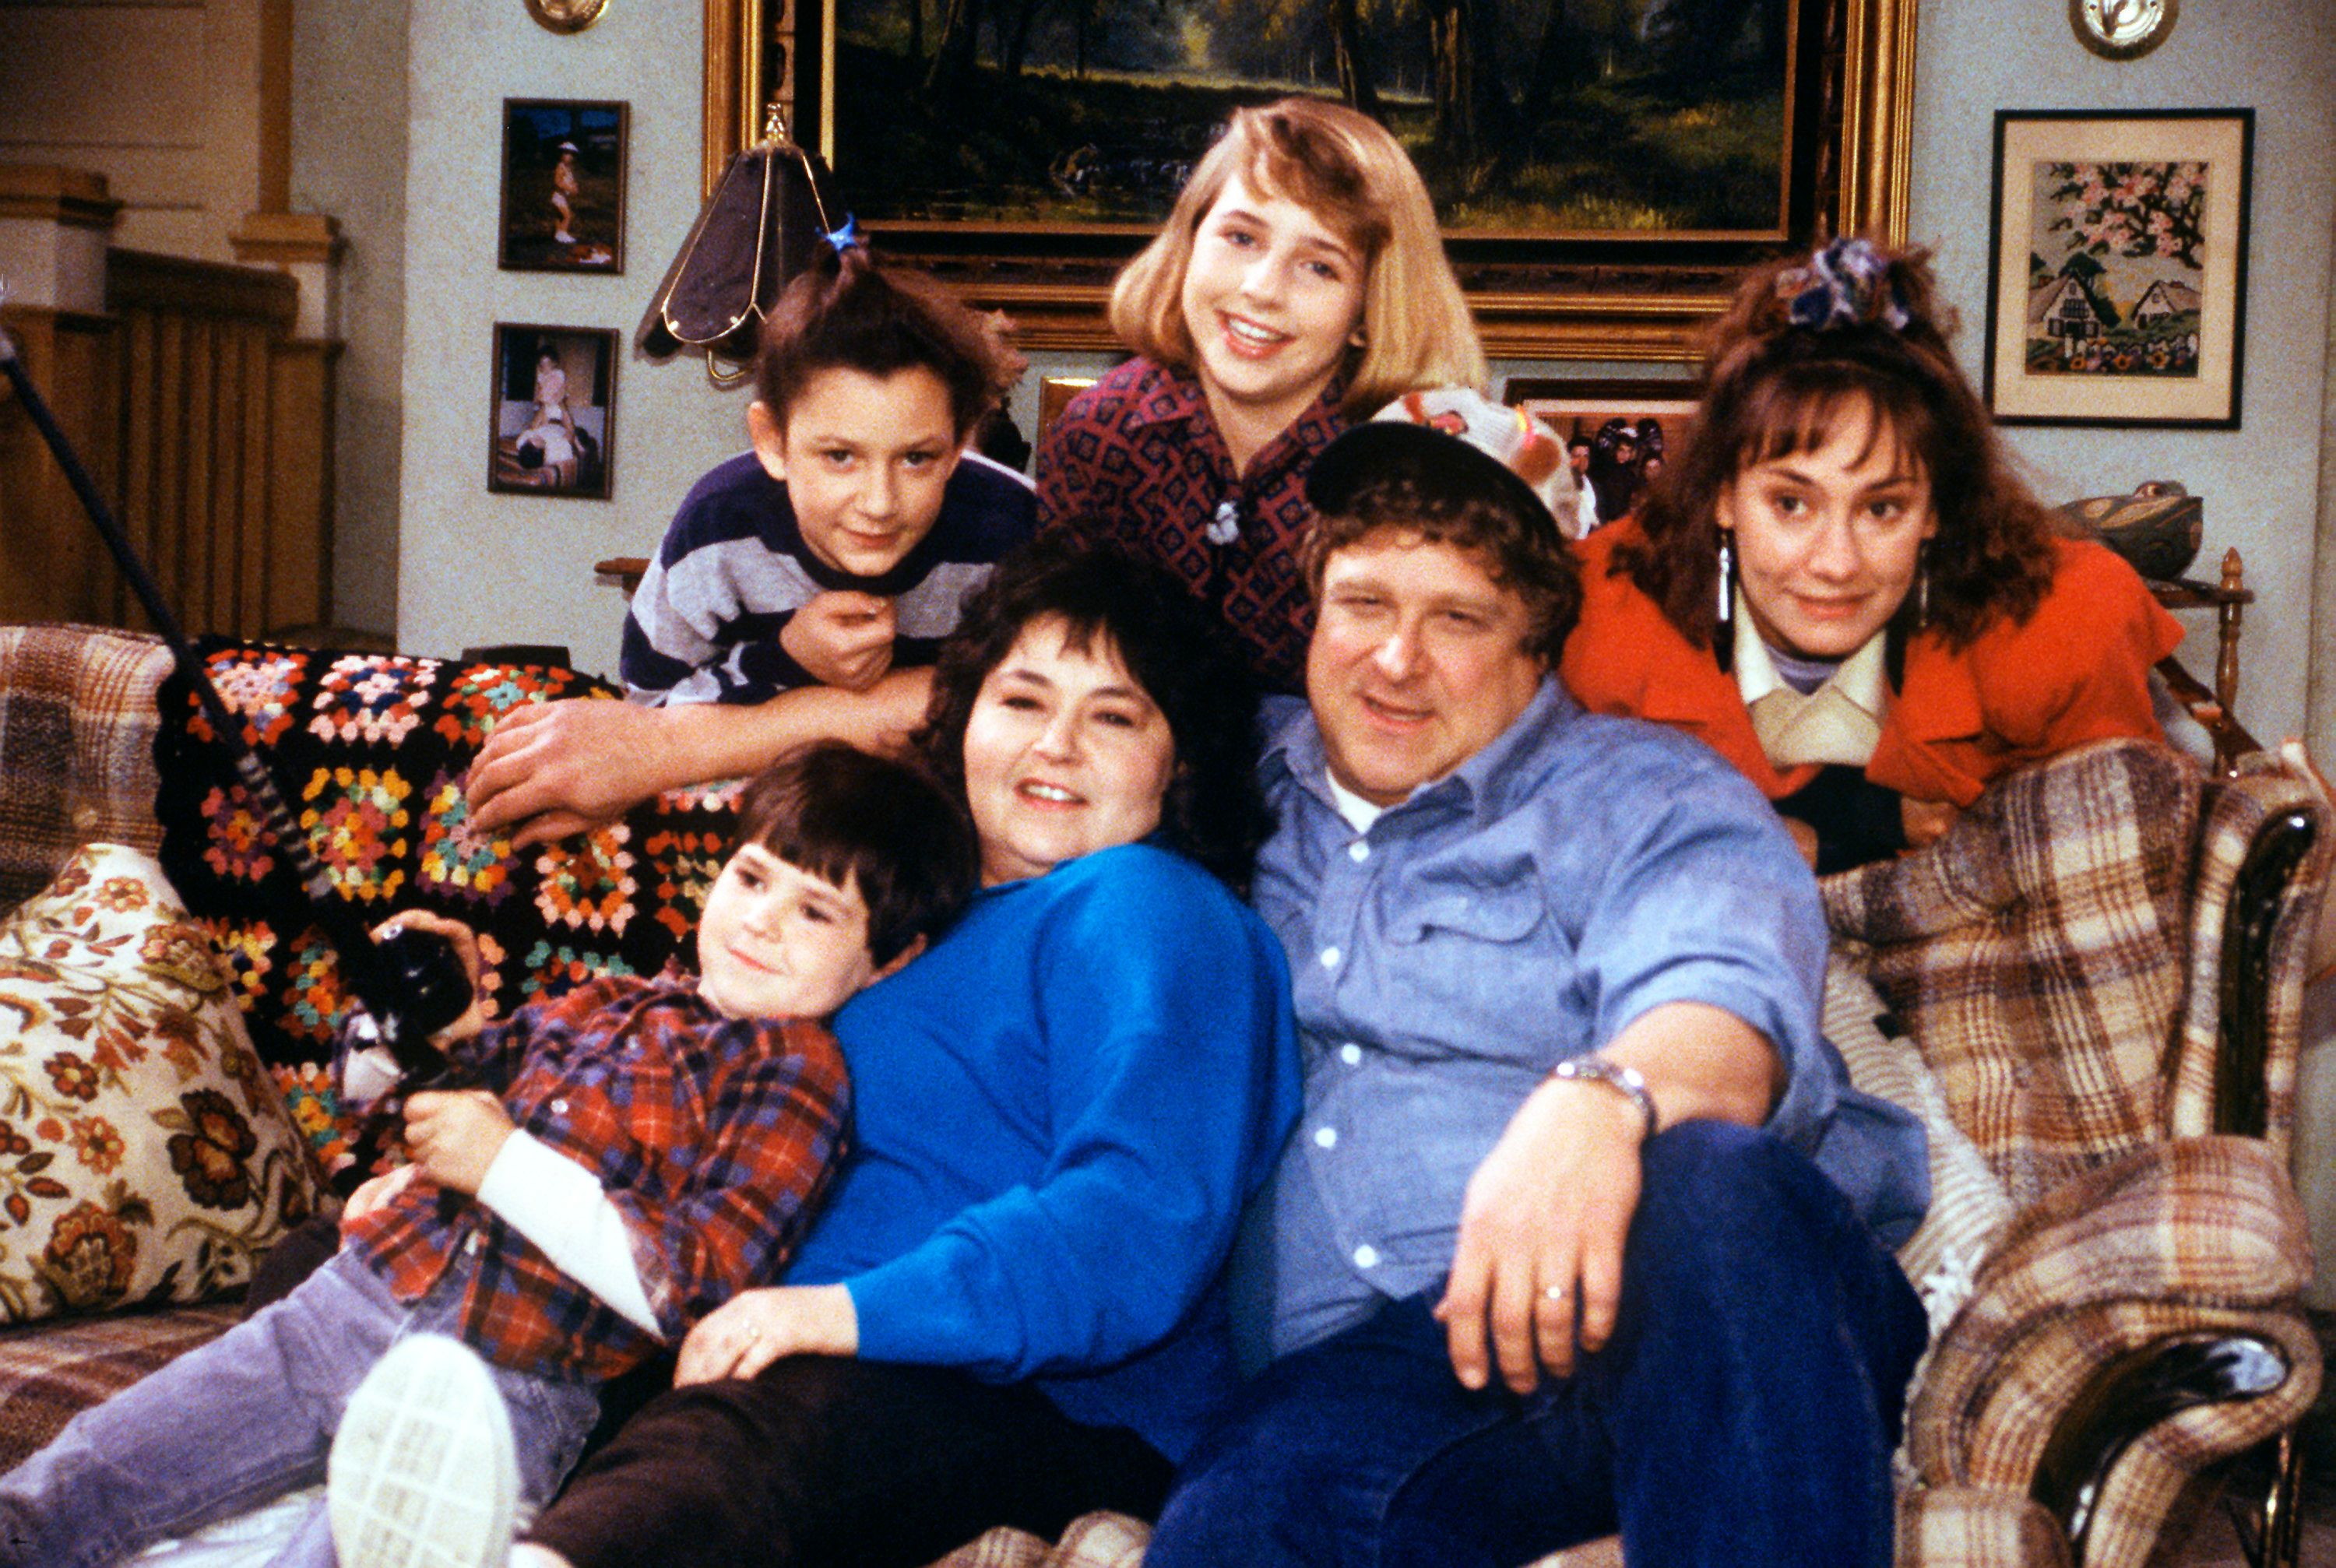 UNITED STATES - JANUARY 24:  ROSEANNE - 'The Monday Thru Friday Show' - Season One - 1/24/89, Roseanne (Roseanne Barr) and Dan (John Goodman) disagree about where to spend a romantic 15th anniversary; Darlene (Sara Gilbert, top left) found her paper route more than she could handle; Becky (Lecy Goranson, top center) refused to dissect a frog in biology class. Laurie Metcalf (Jackie) and Michael Fishman (D.J.) also starred.,  (Photo by ABC Photo Archives/ABC via Getty Images)